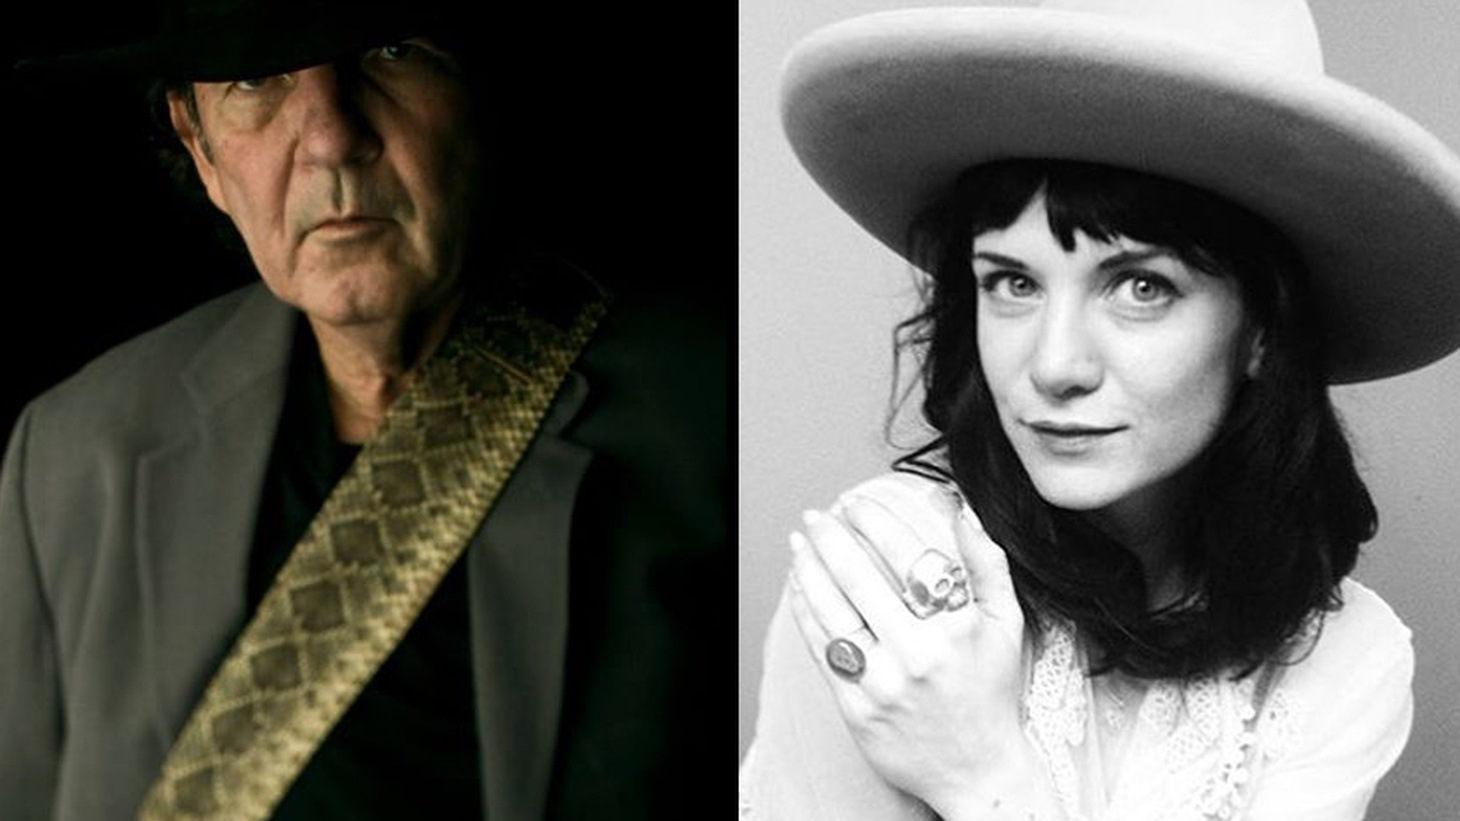 Each year, some of the best Americana songwriters in the country set sail on an adventure called Cayamo. Gifted guitarist and songwriter Buddy Miller set up a recording studio on board to capture duets of classic songs with his shipmates, including Richard Thompson, Brandi Carlile and Lucinda Williams.